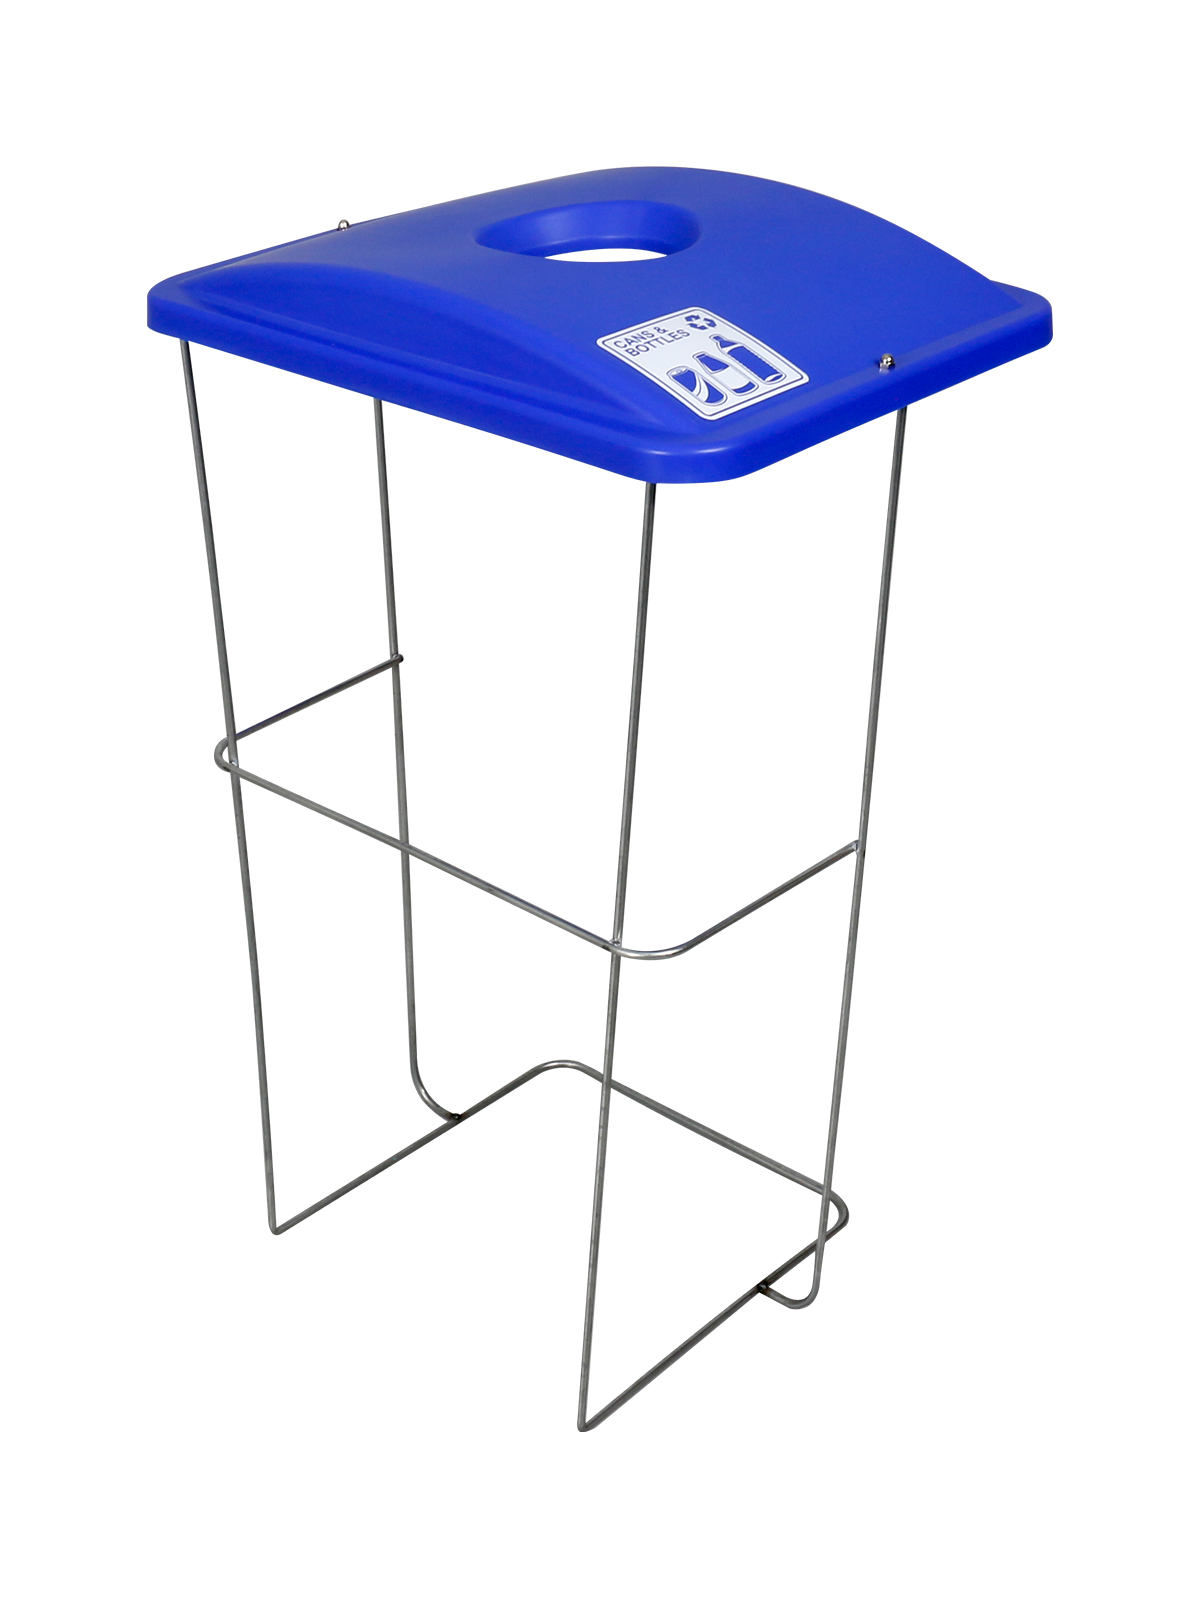 WIRE EVENT CONTAINER (5 Pack) - Single - Cans & Bottles - Circle - Blue